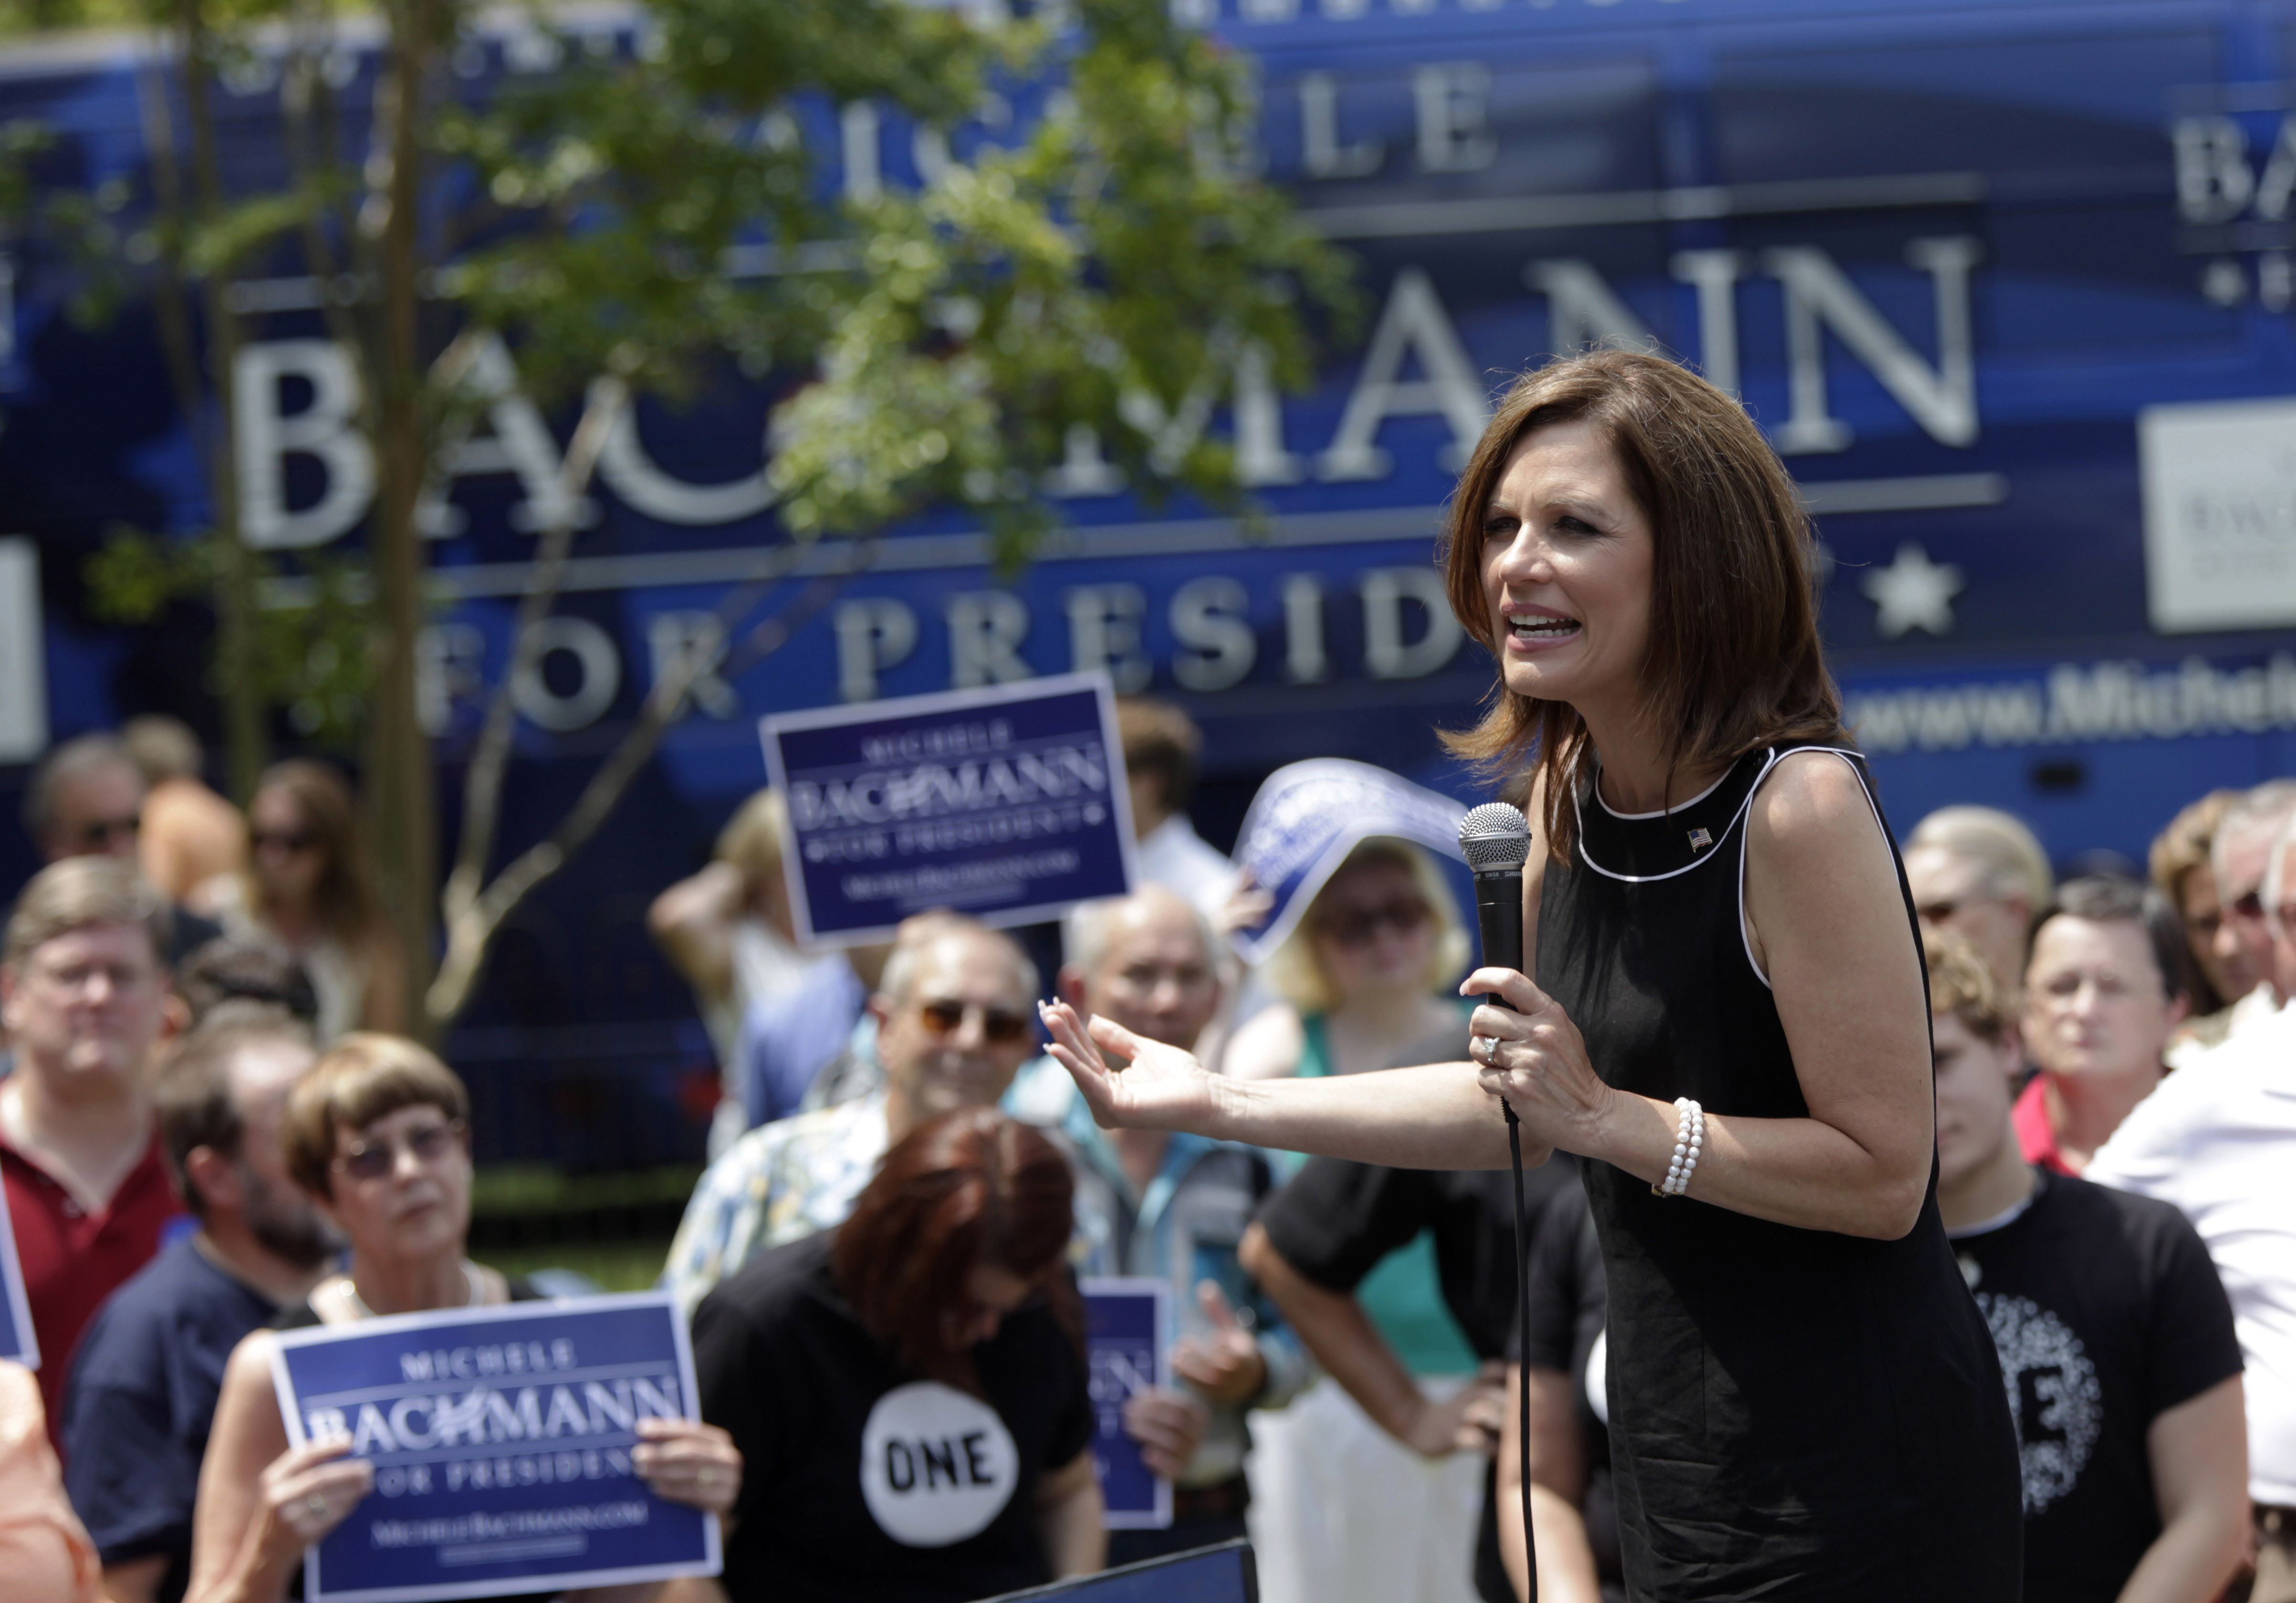 Michele Bachmann Campaigning, August 2011